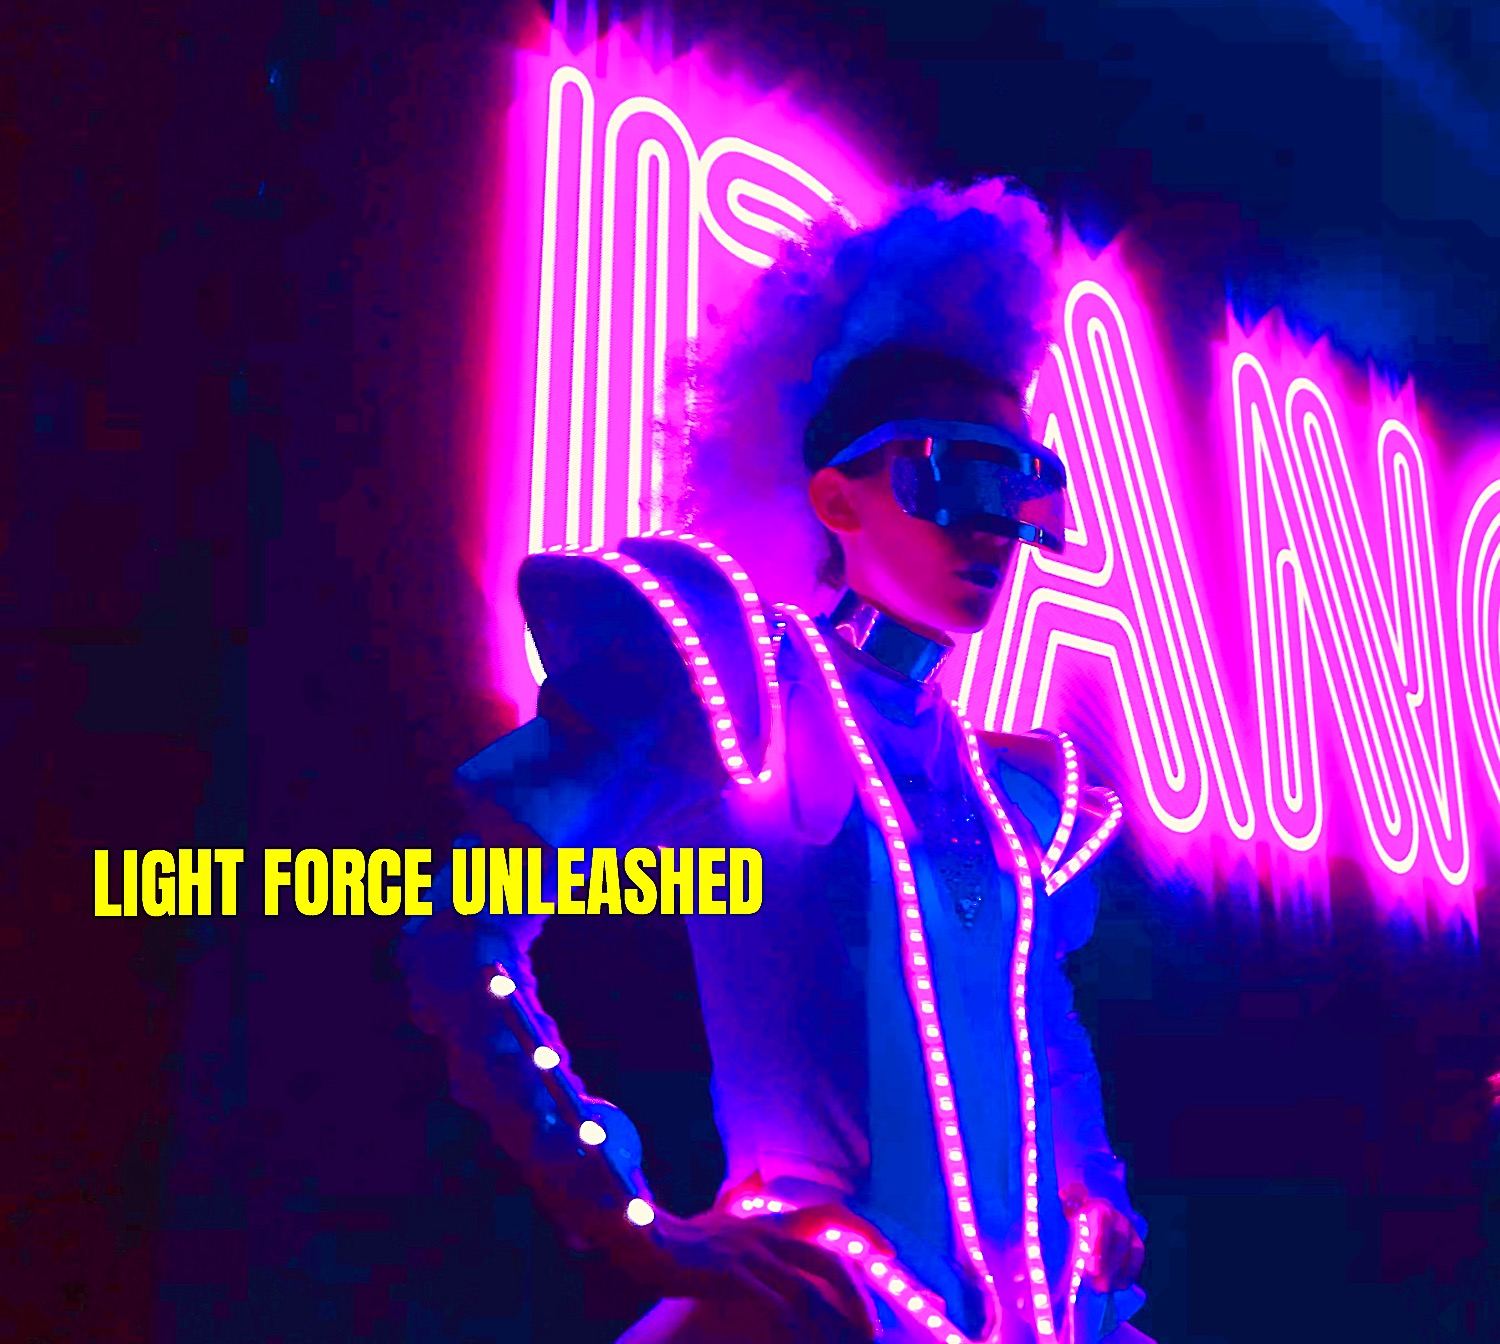 Light Force Unleashed